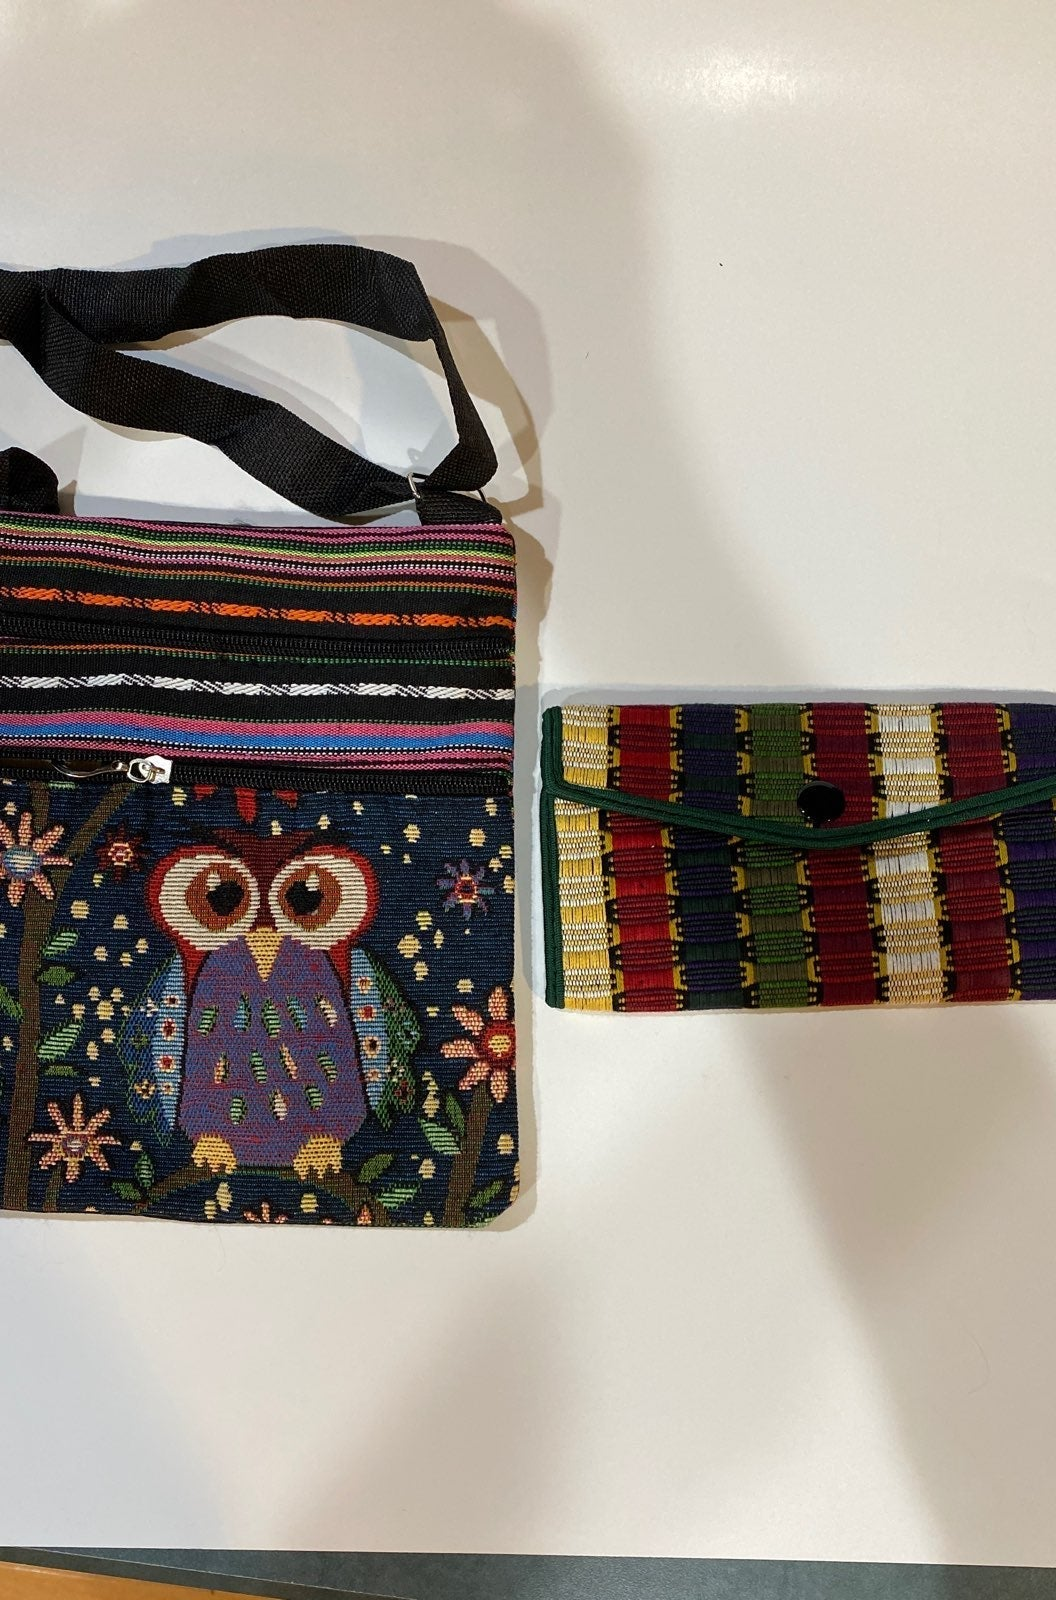 ADORABLE OWL PURSE AND WALLET SET!